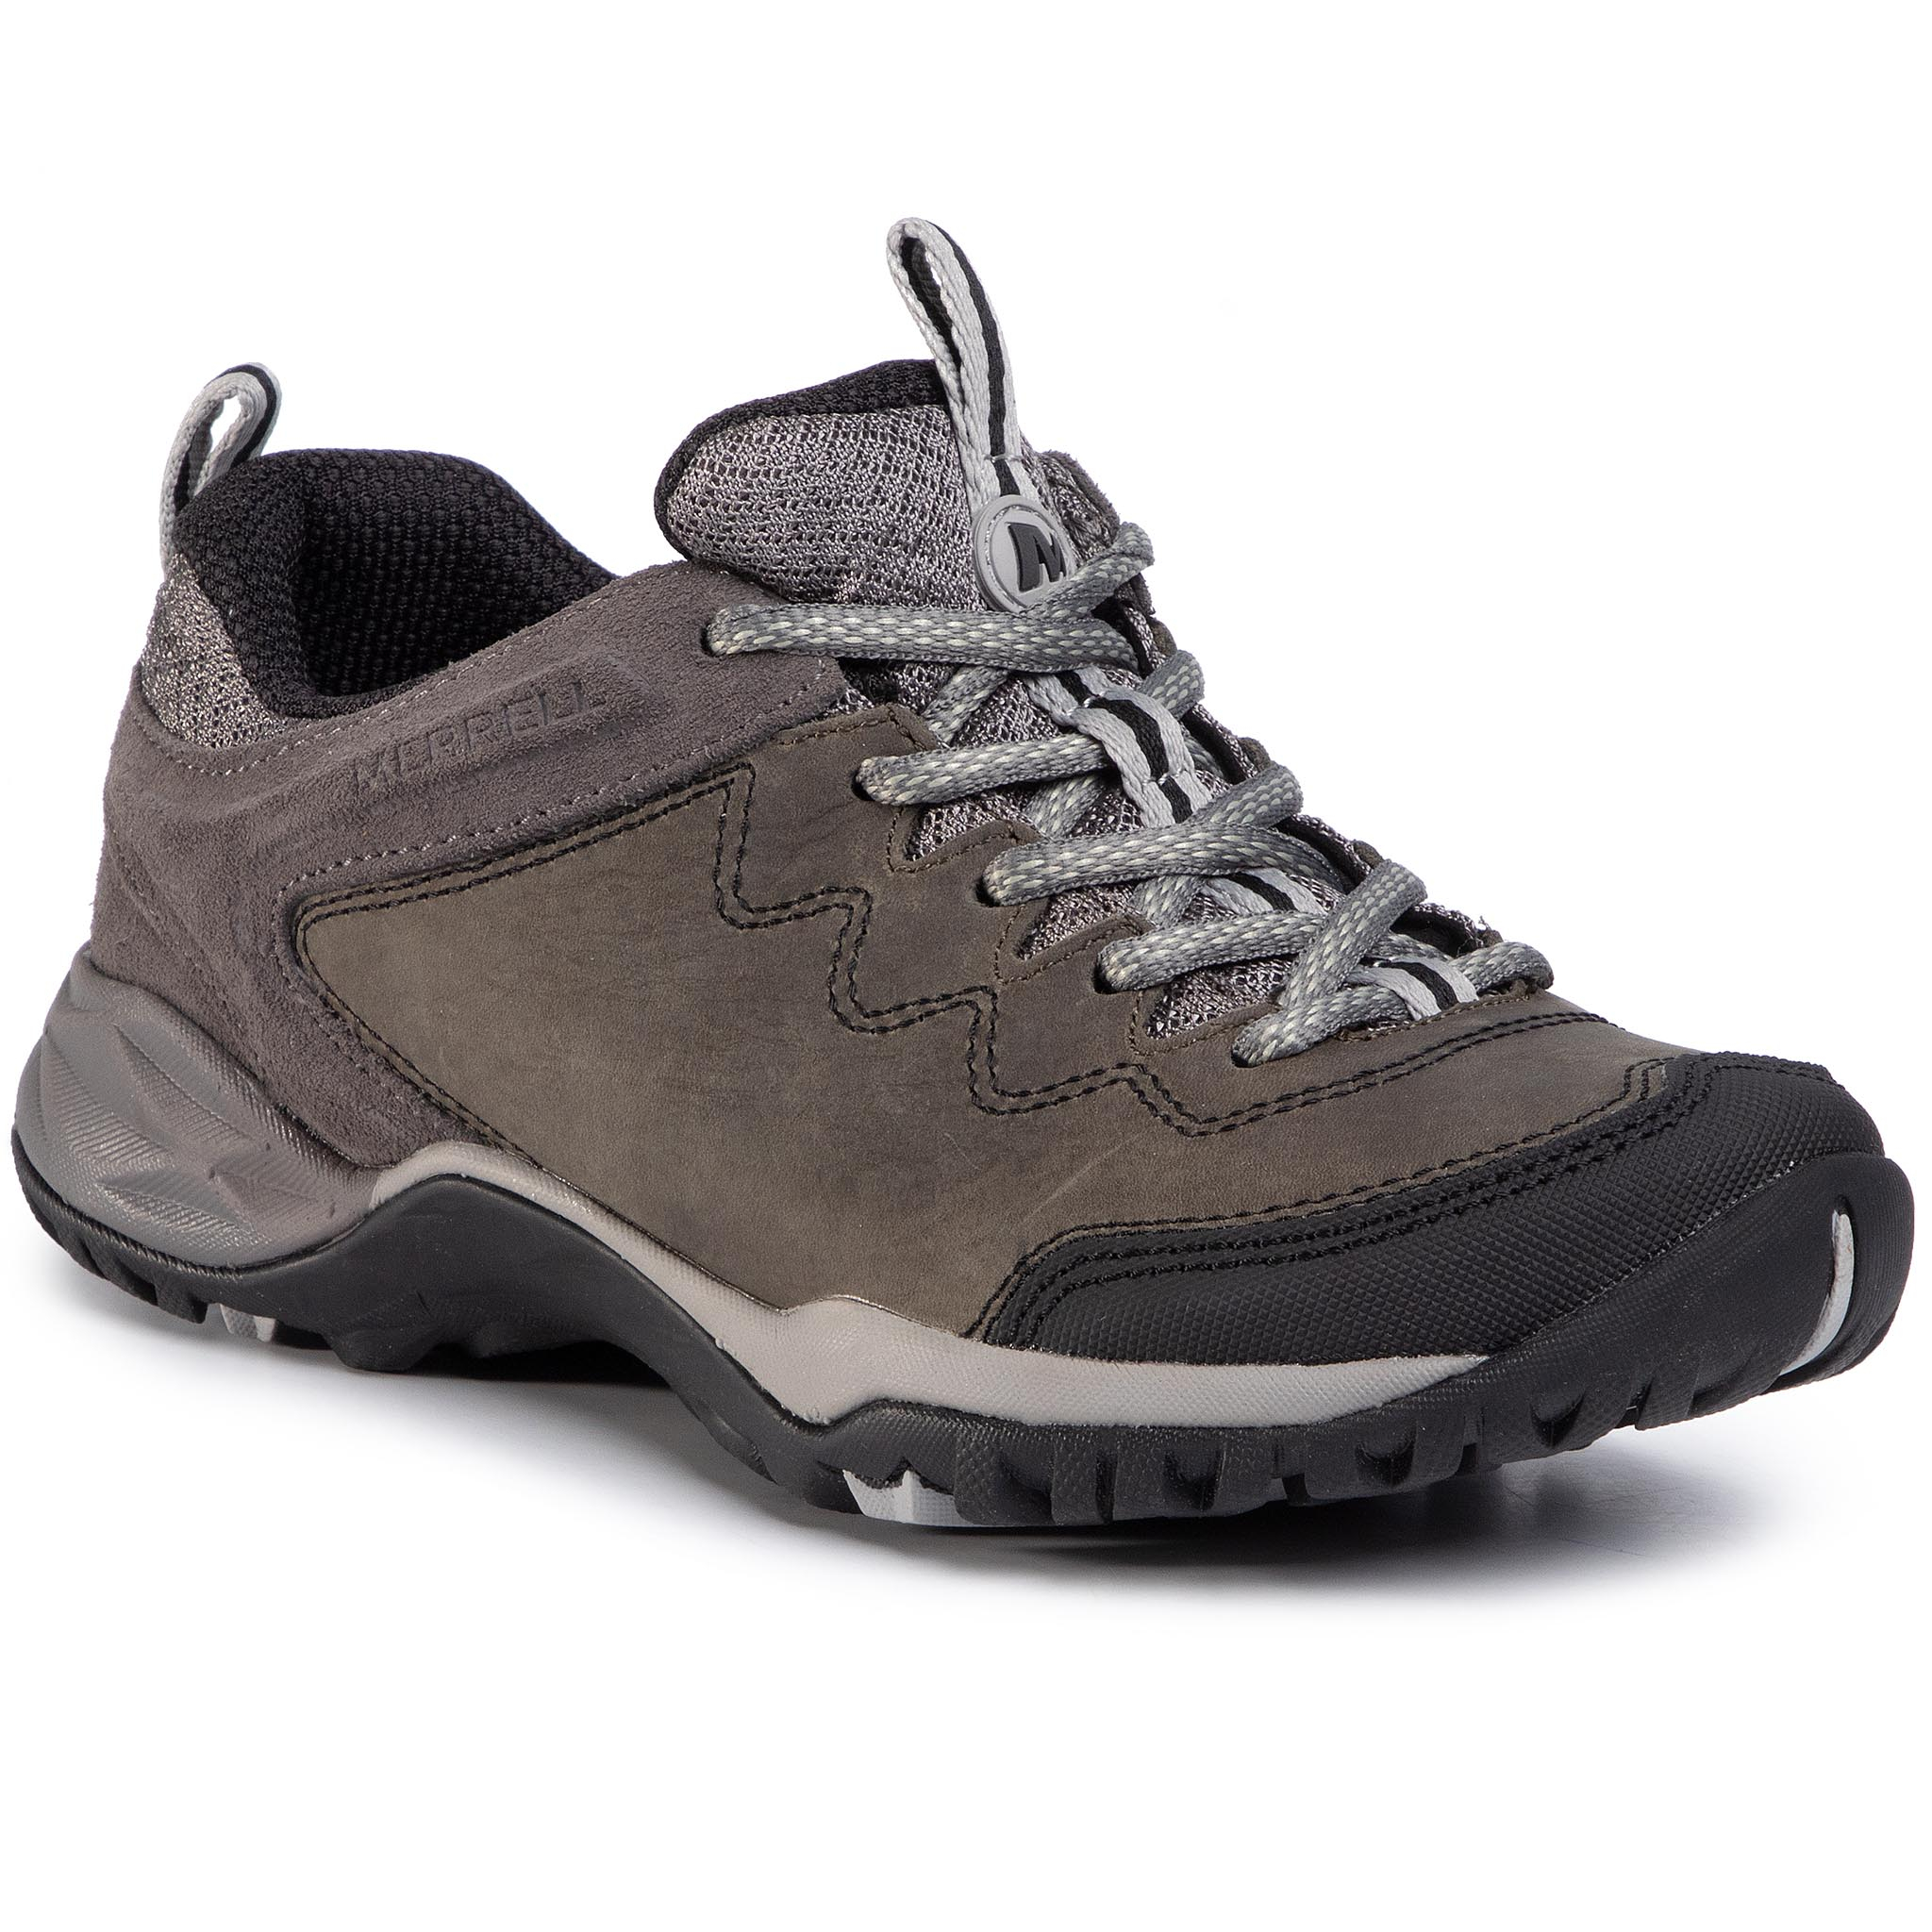 Trekkings Merrell - Siren Traveller Q2 Ltr J033524 Grey imagine epantofi.ro 2021